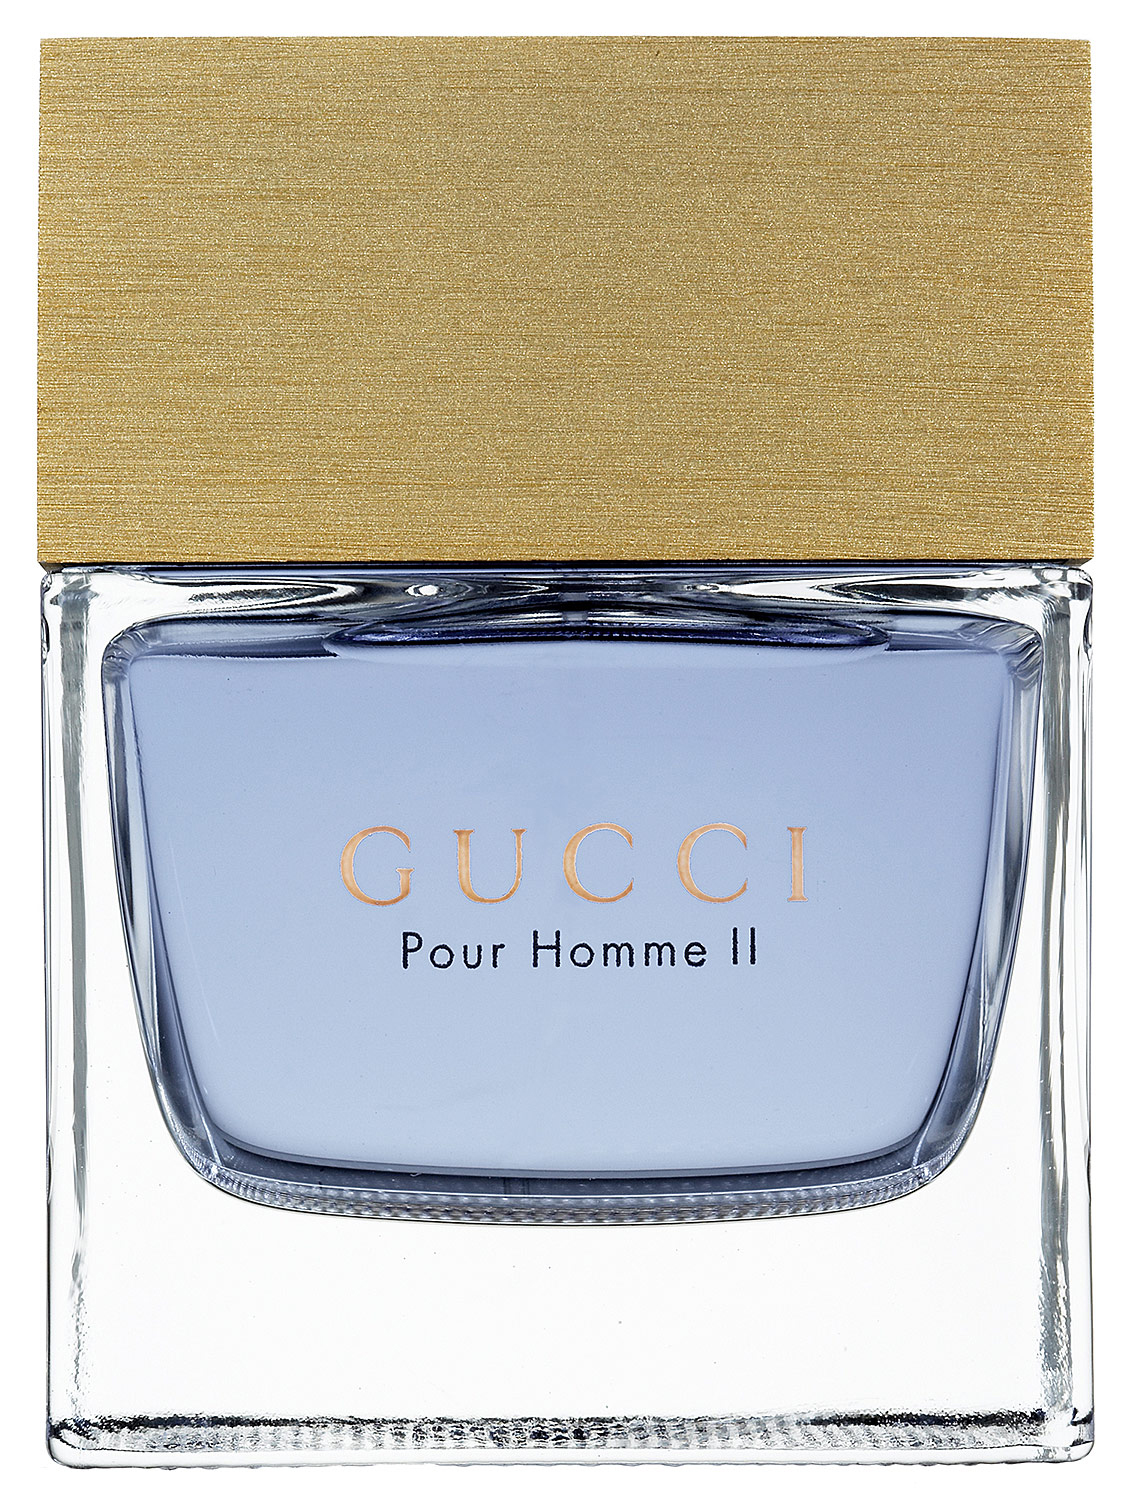 Gucci Pour Homme II Gucci for men